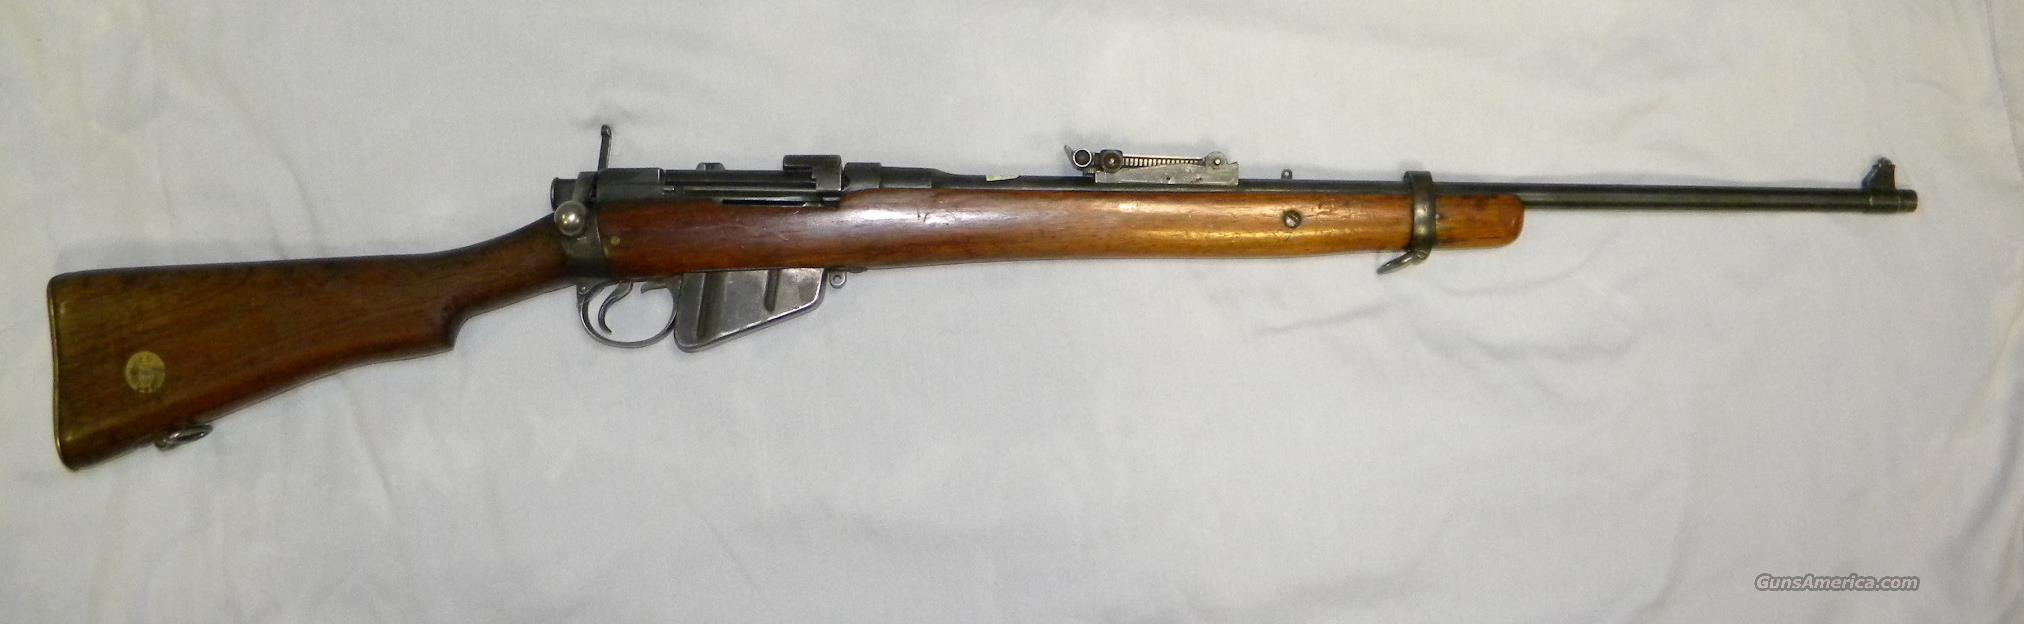 Lee-Enfield S.M.L.E. MkI, .303 Brit  Guns > Rifles > Enfield Rifle